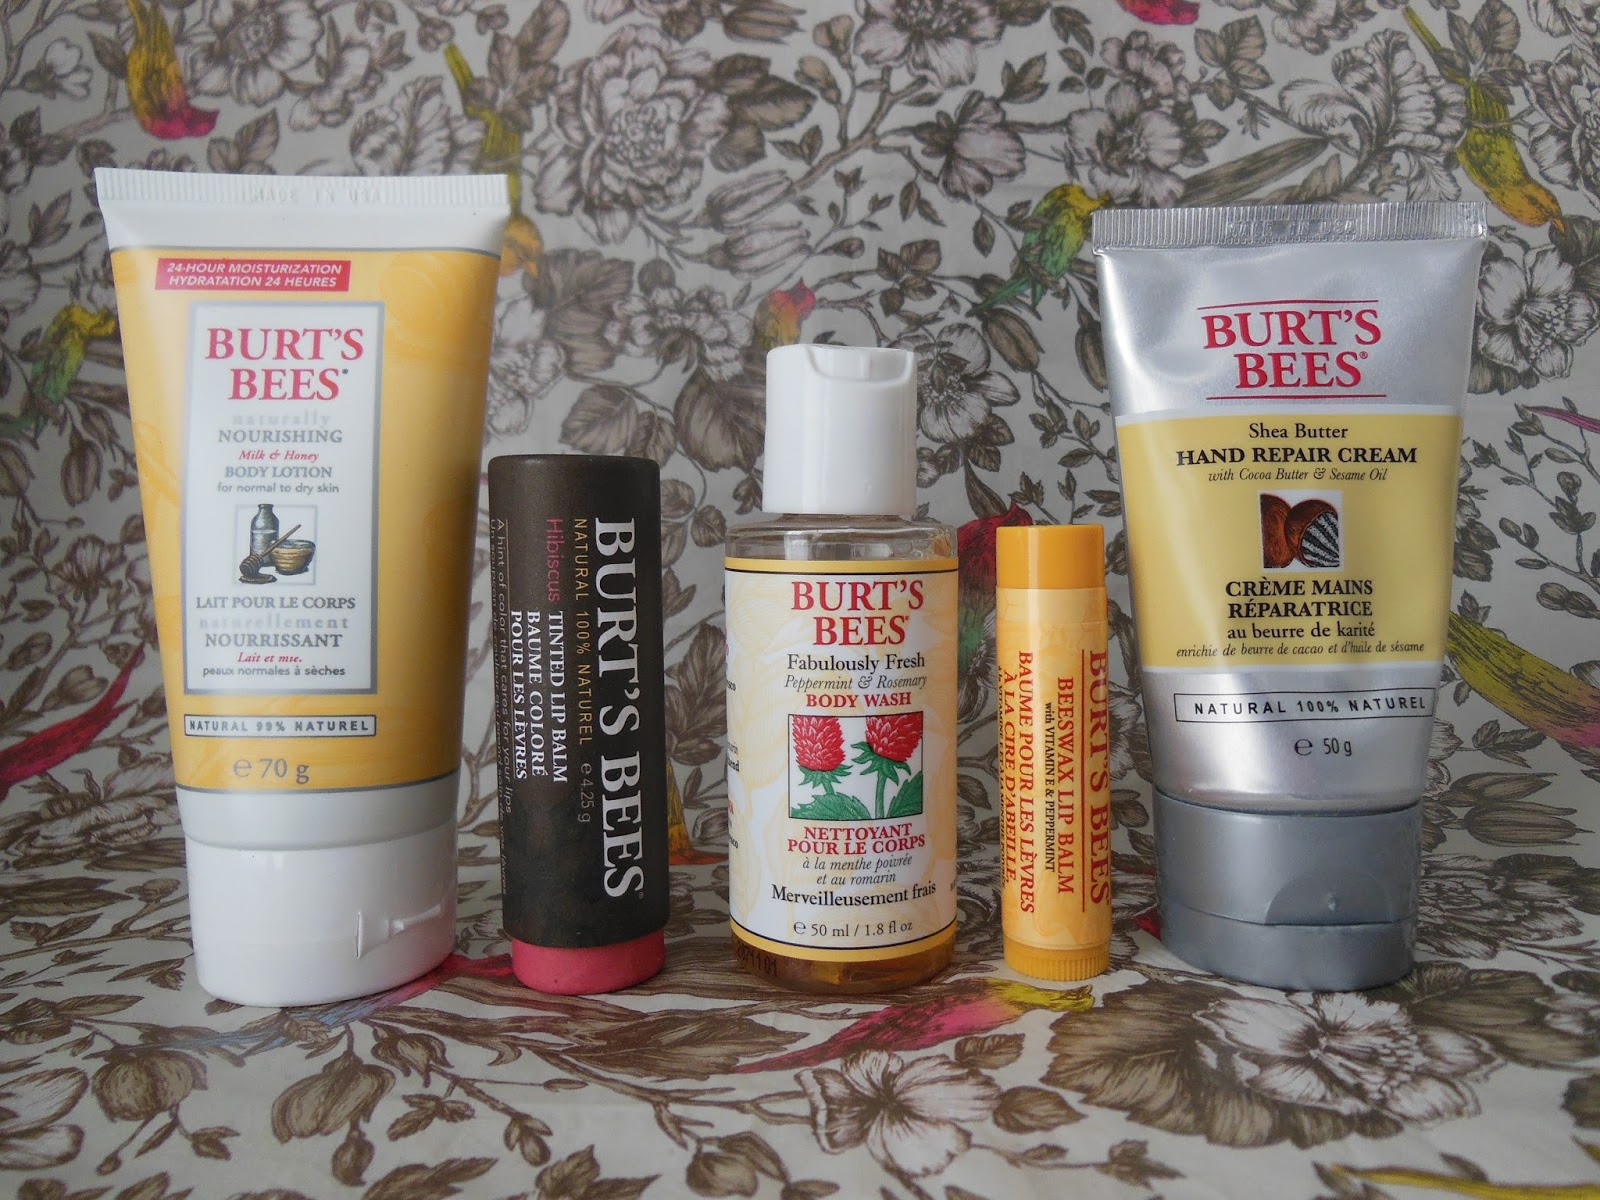 Burt's Bees Daily Indulgence collection  contents